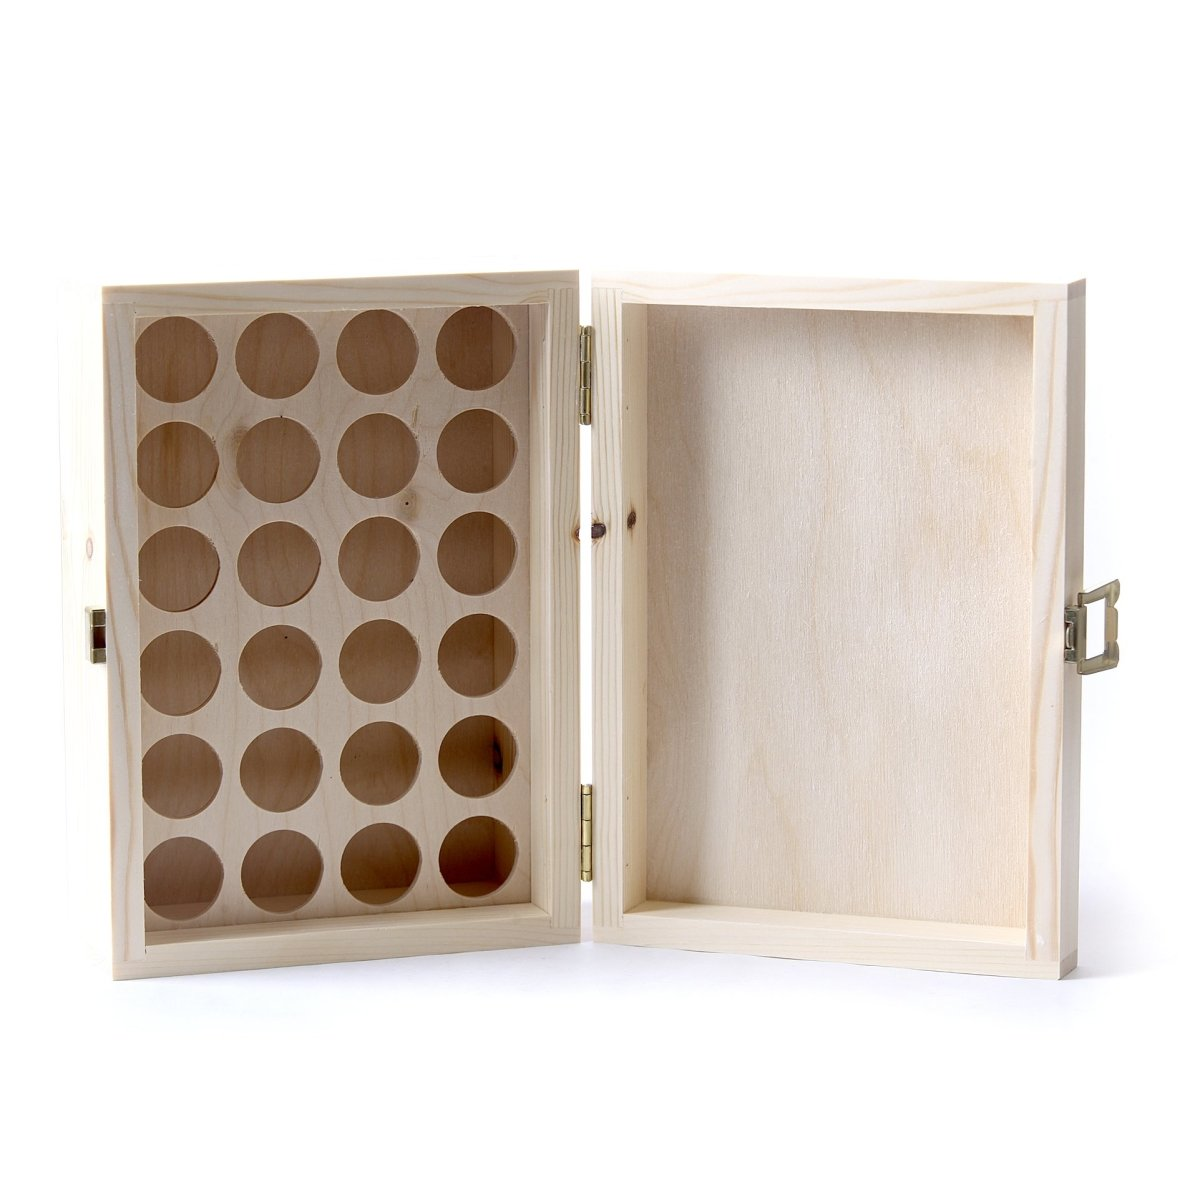 Wooden Aromatherapy Gift Box - (Empty But Can Hold 24 x 10ml Glass Bottles) UK Manufactured - Mystic Moments UK